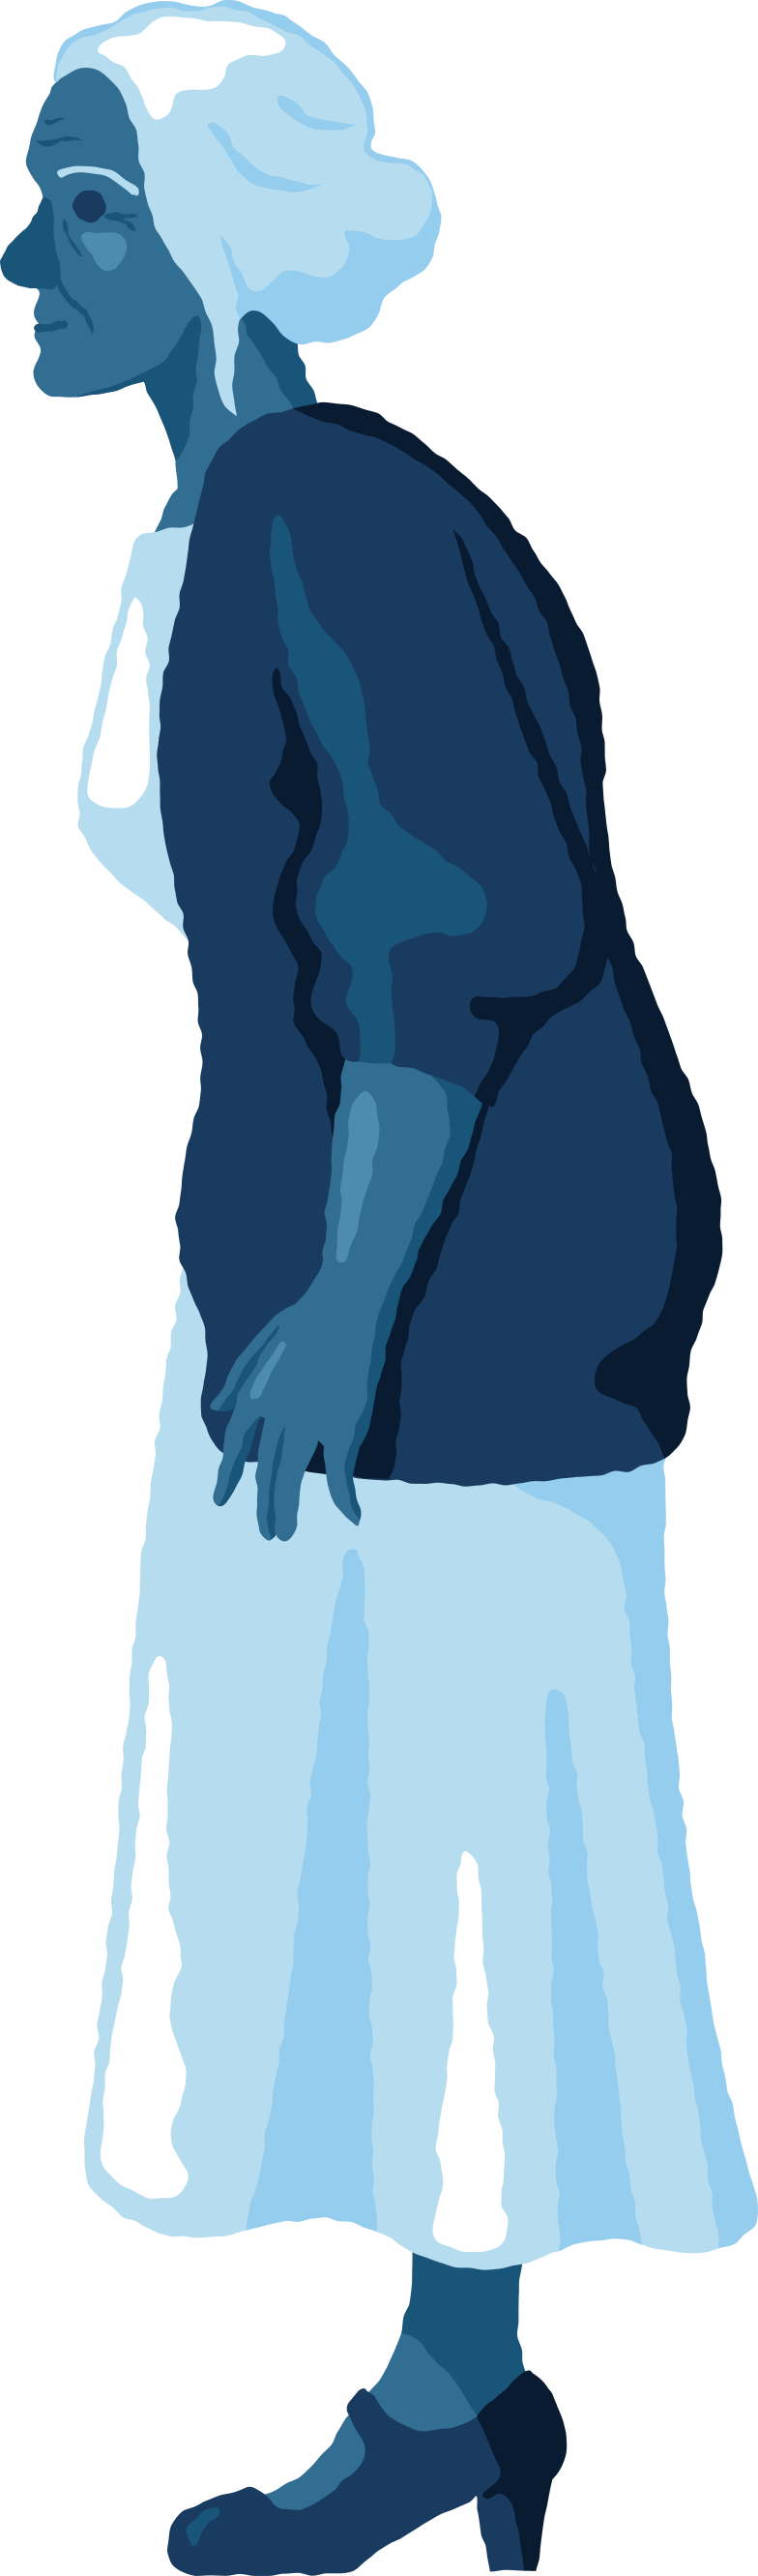 old woman standing profile Clipart illustration in PNG, SVG